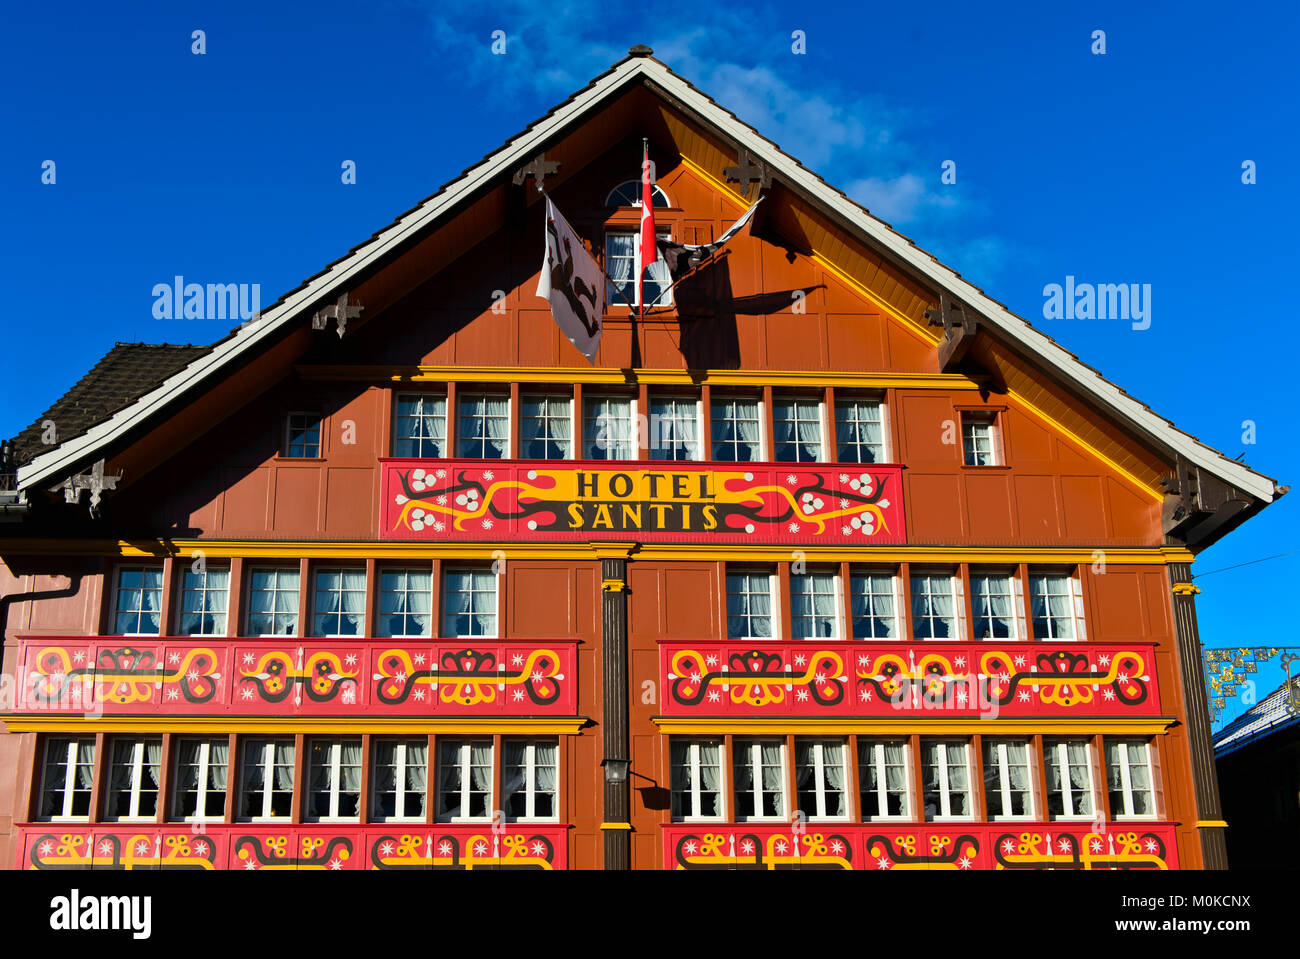 Hotel Säntis with magnificent facade on the Landsgemeindeplatz, Appenzell, capital of the canton of Appenzell - Stock Image